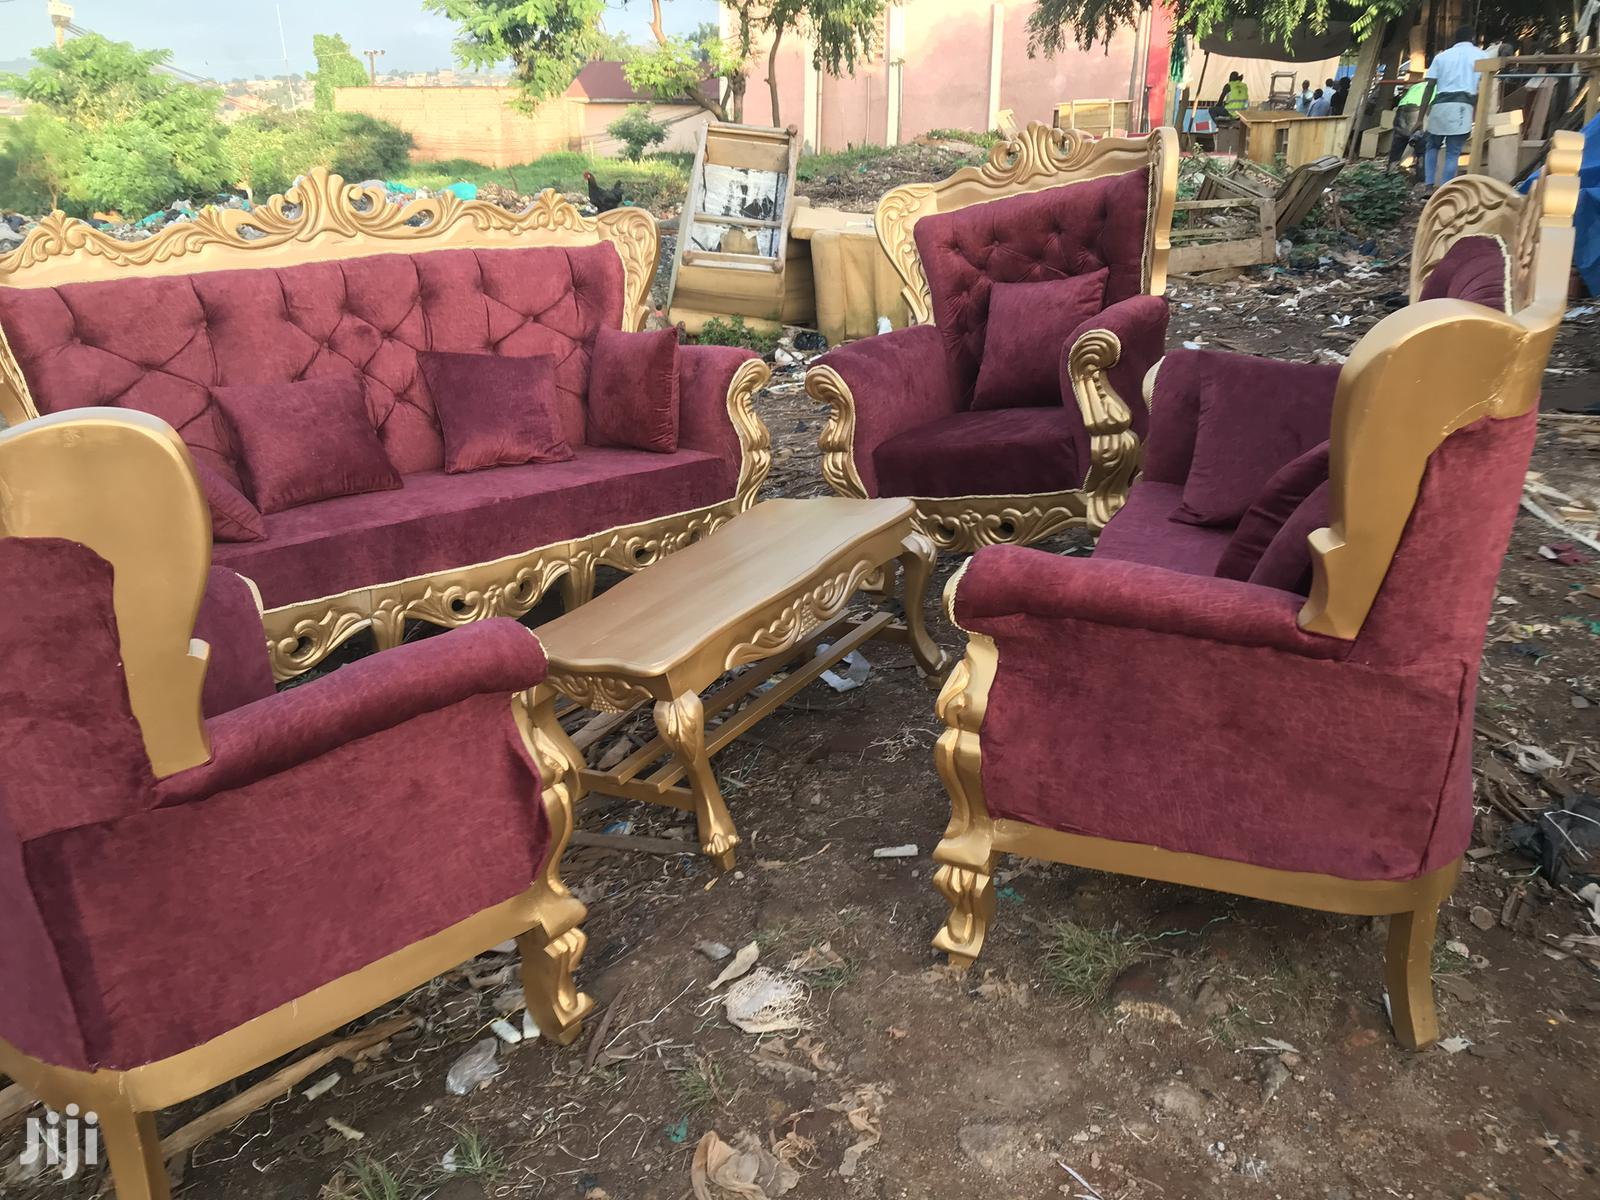 Archive: Grandfather 7 Seater Sofa Set